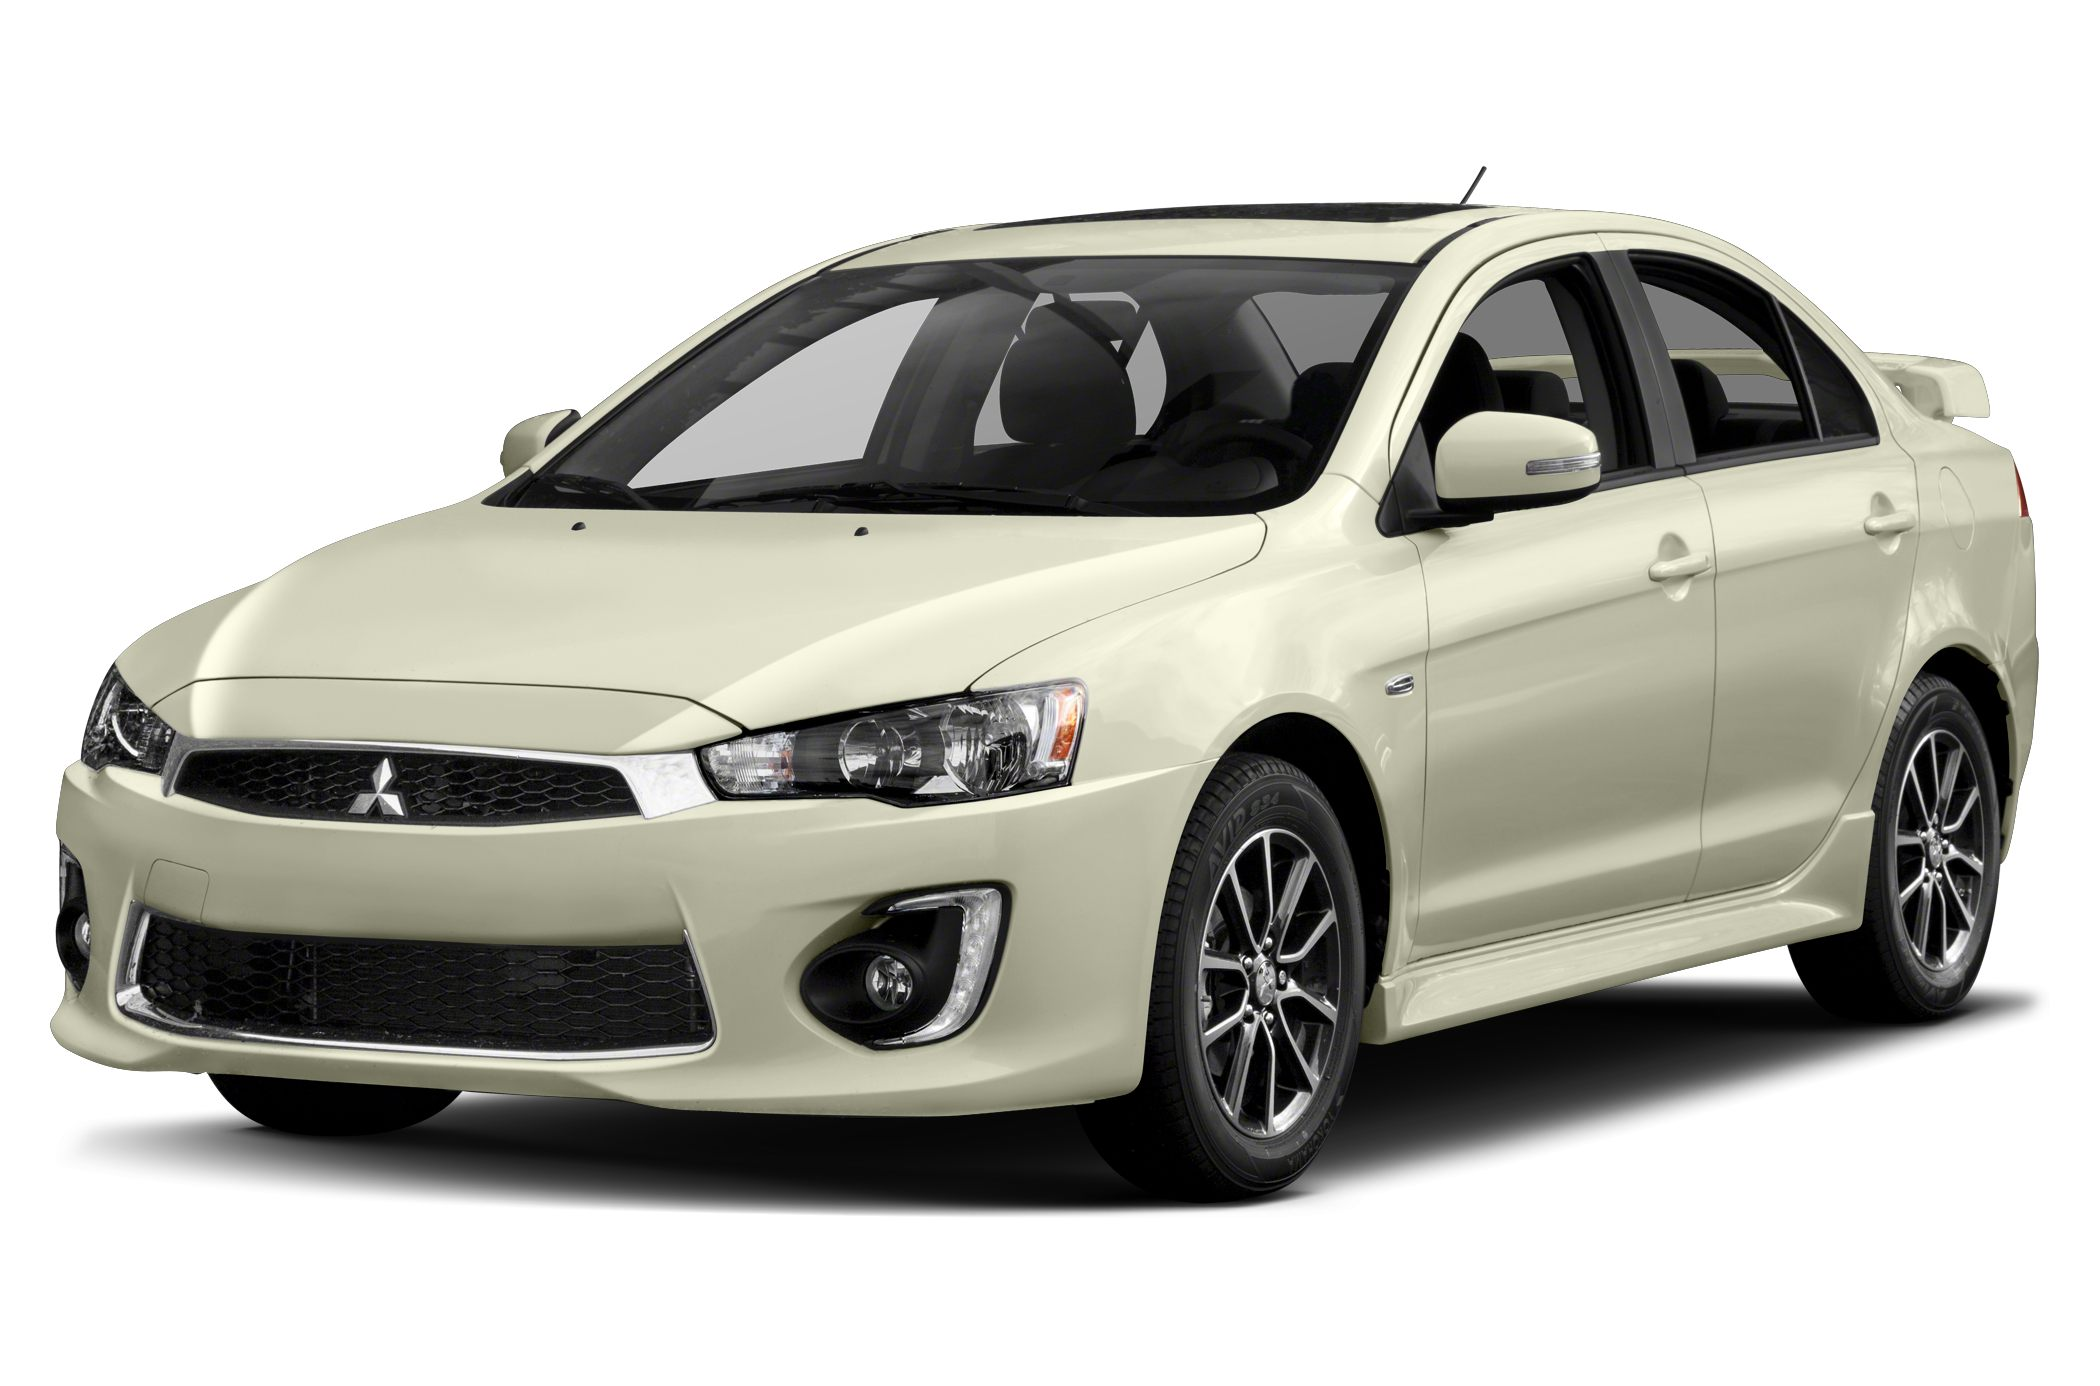 Toyota Corolla News, Photos and Buying Information - Autoblog